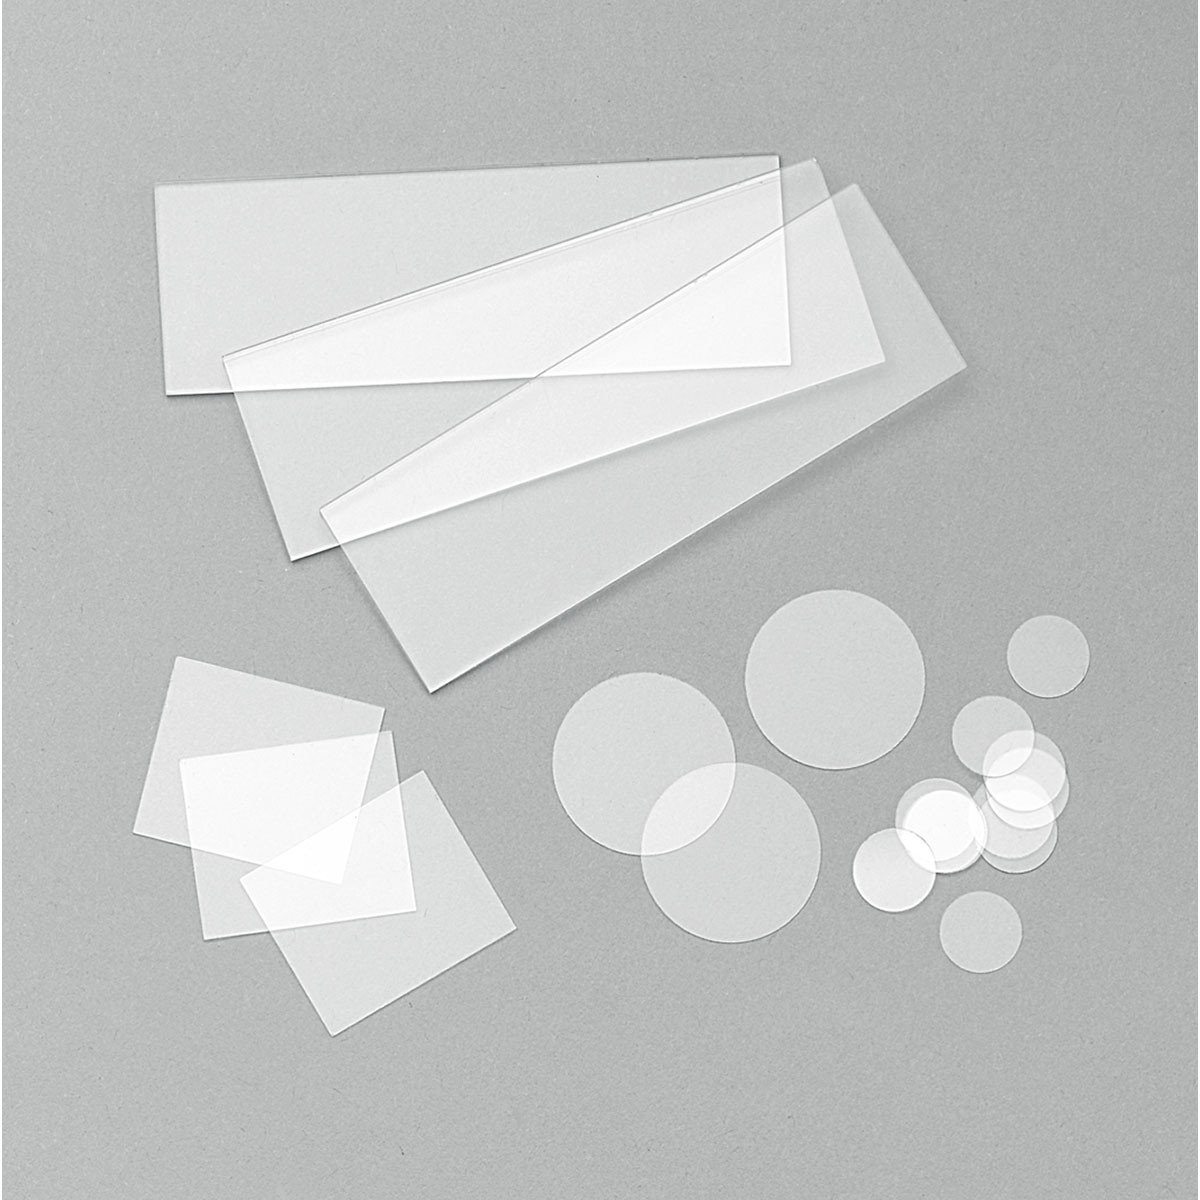 Cover Slips No. 0 22x22mm (100/ pack)